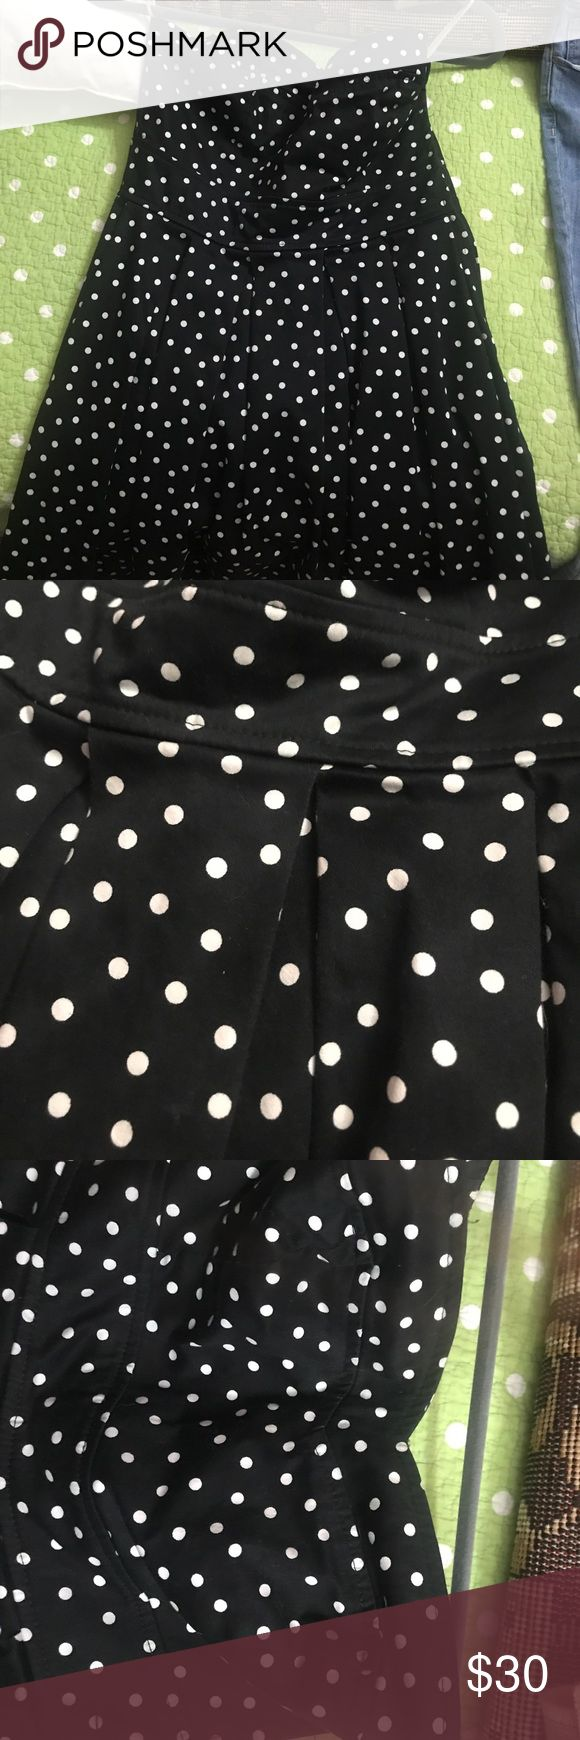 Lulu strapless polka dot dress 👗 Awesome short dress for that perfect cocktail party 🍸 Forever 21 Dresses Strapless